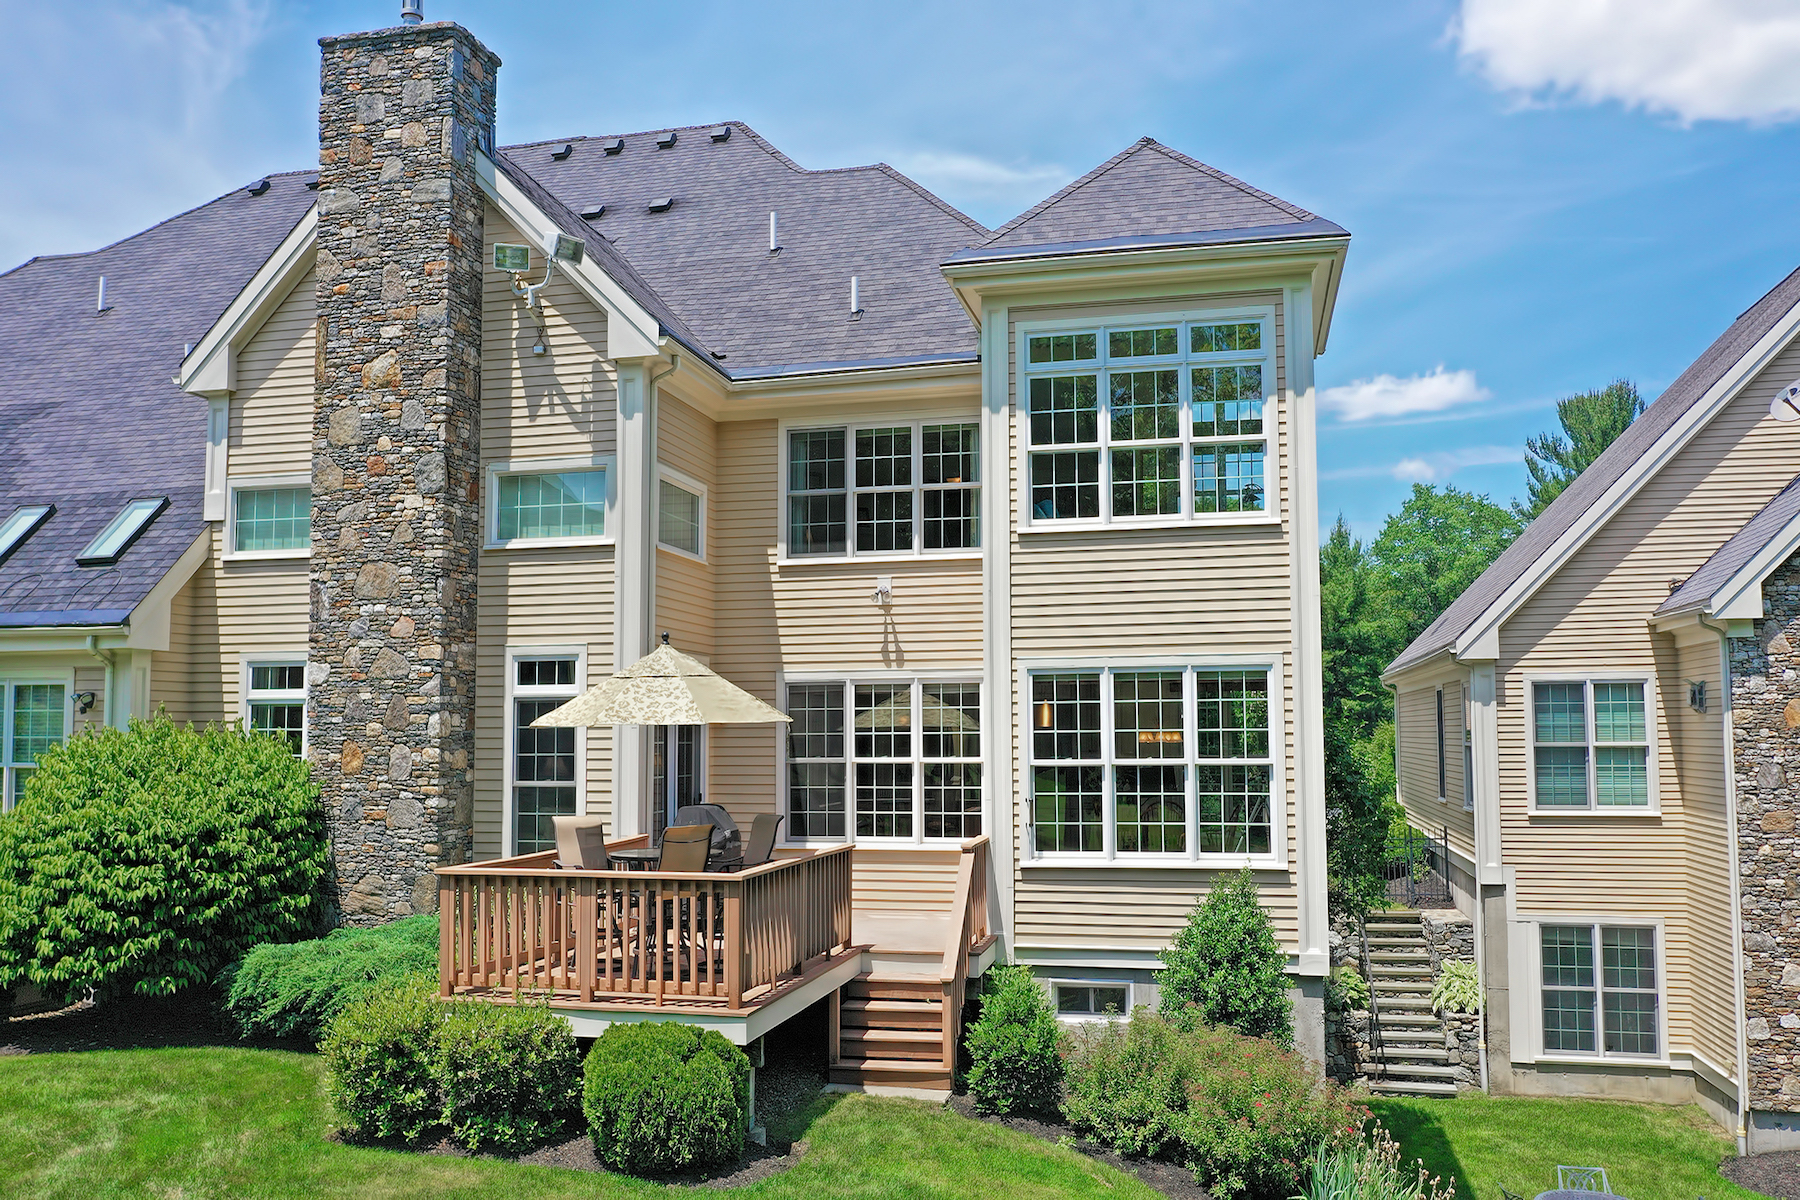 townhouses for Sale at Extraordinary Property Near Pleasant Valley Country Club 14 Eagle Drive - Unit 14 Sutton, Massachusetts 01590 United States